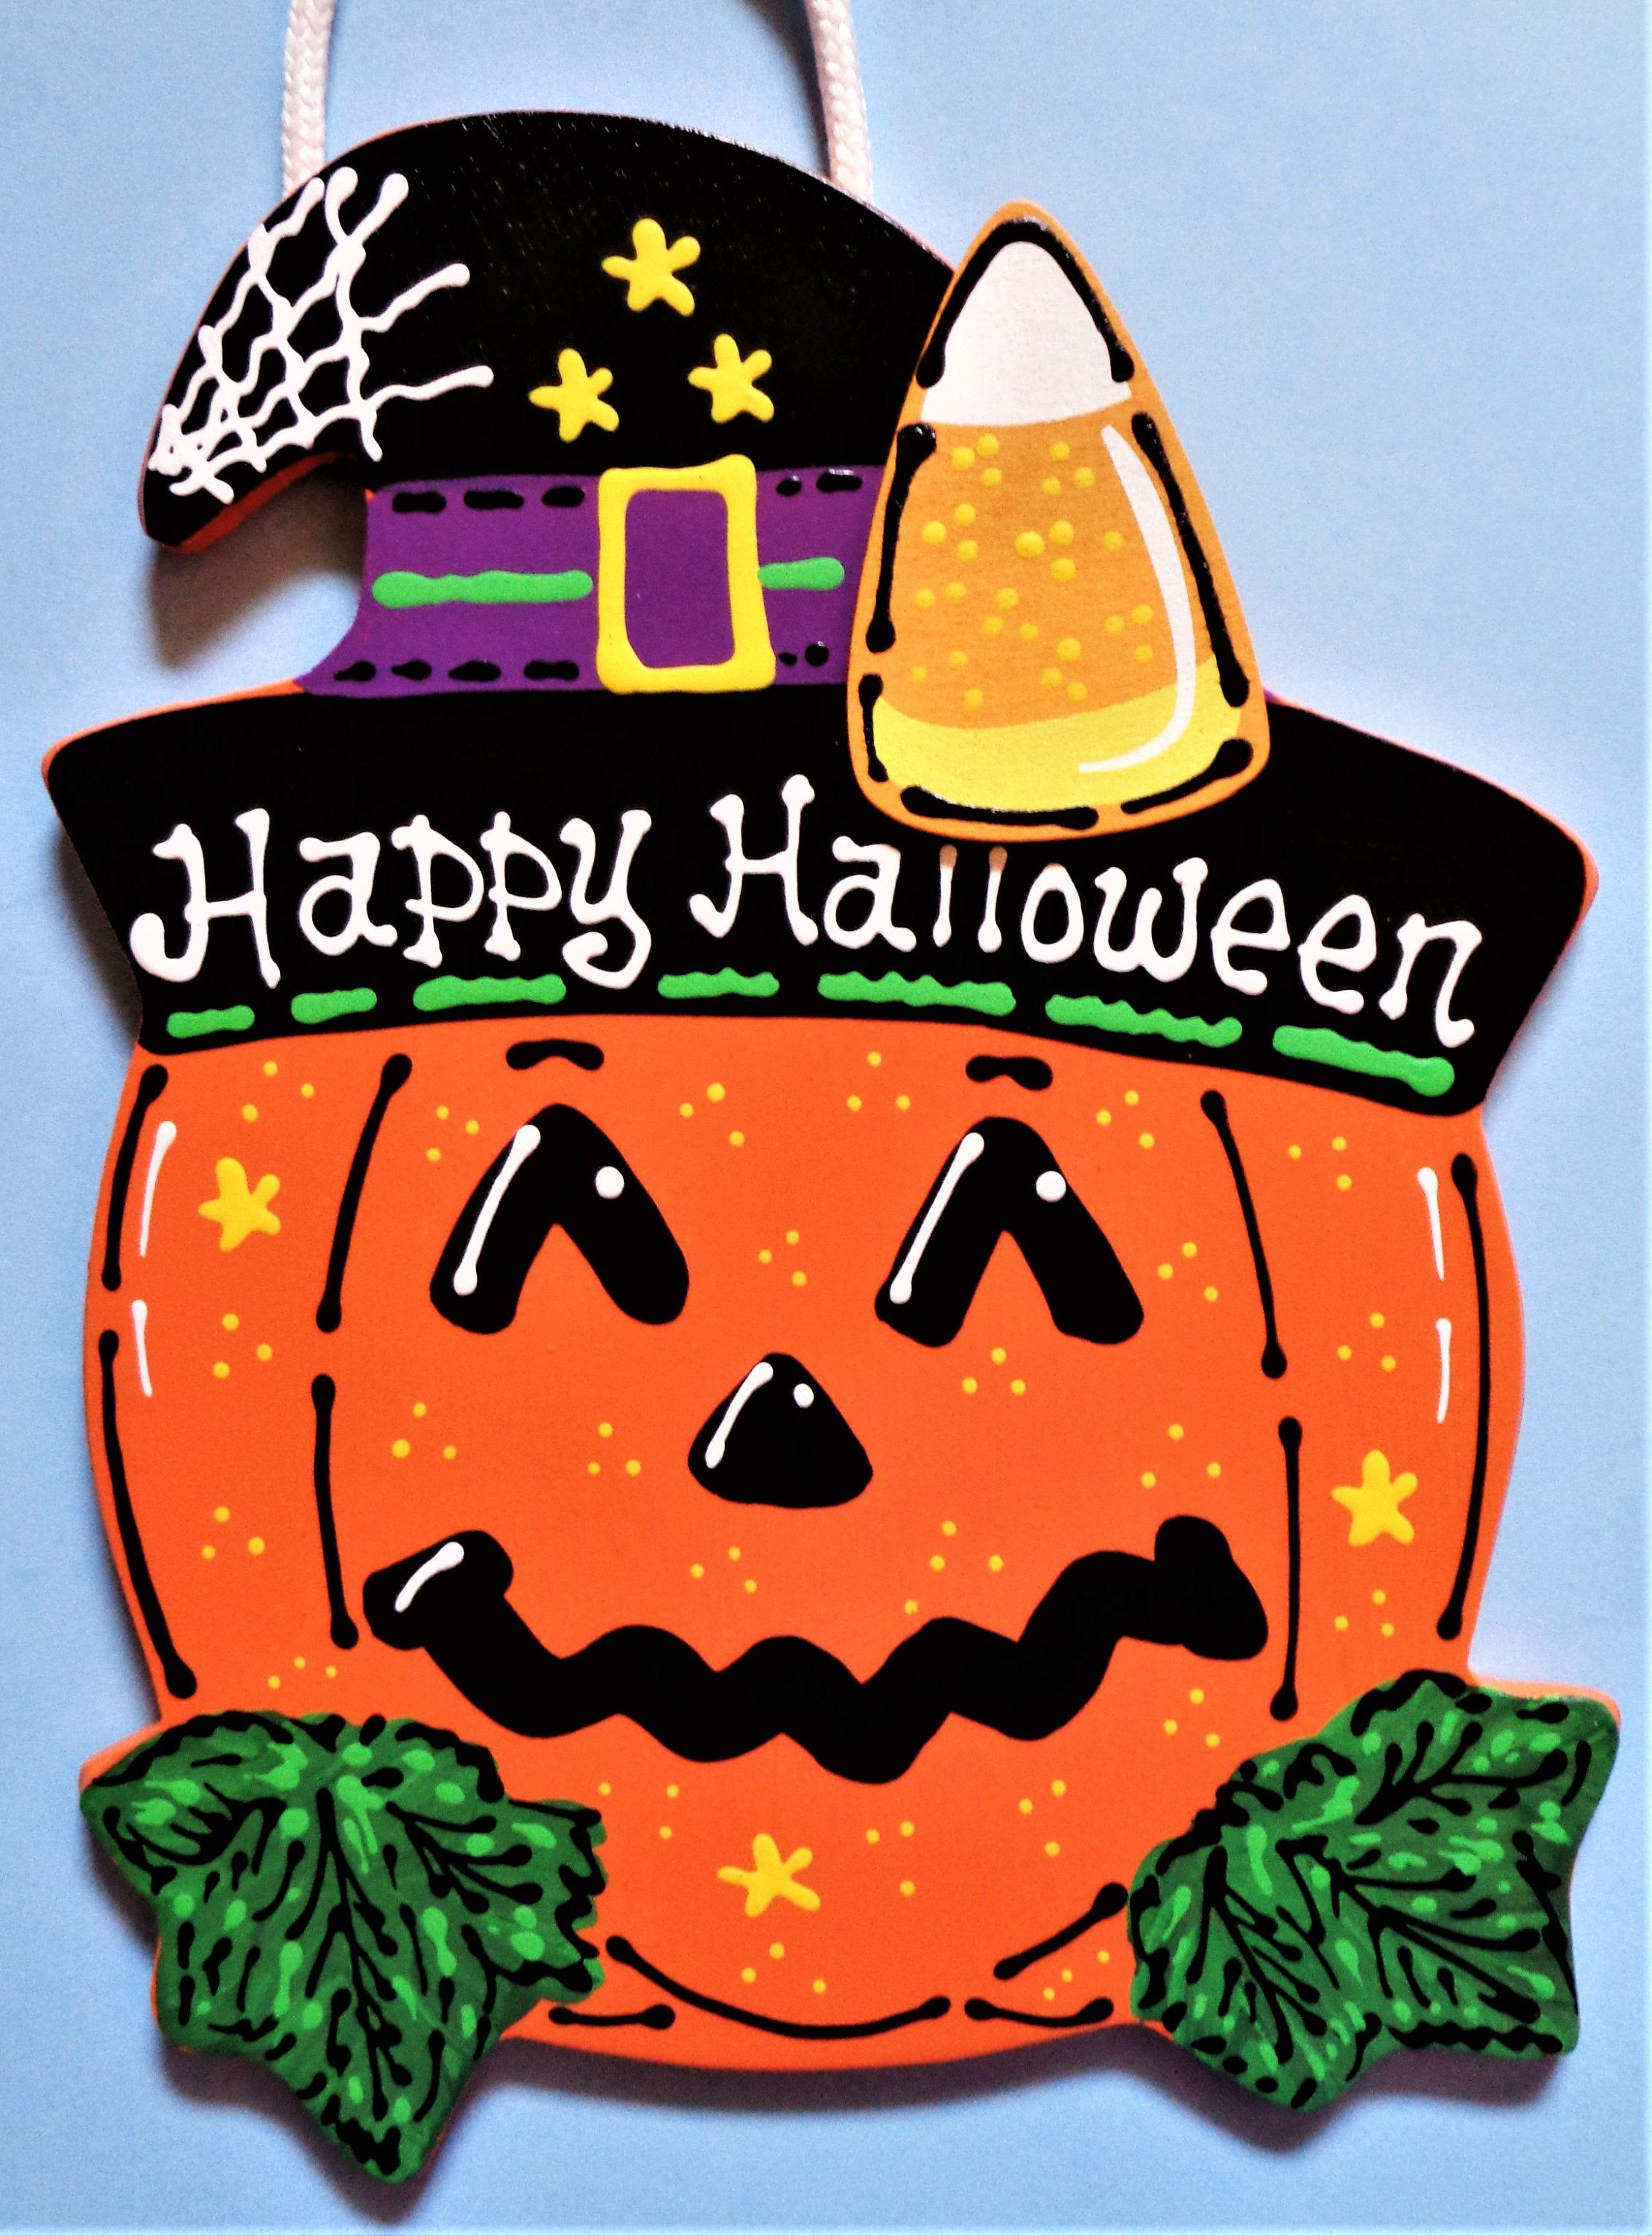 HAPPY HALLOWEEN PUMPKIN Sign Candy Corn Holiday Fall